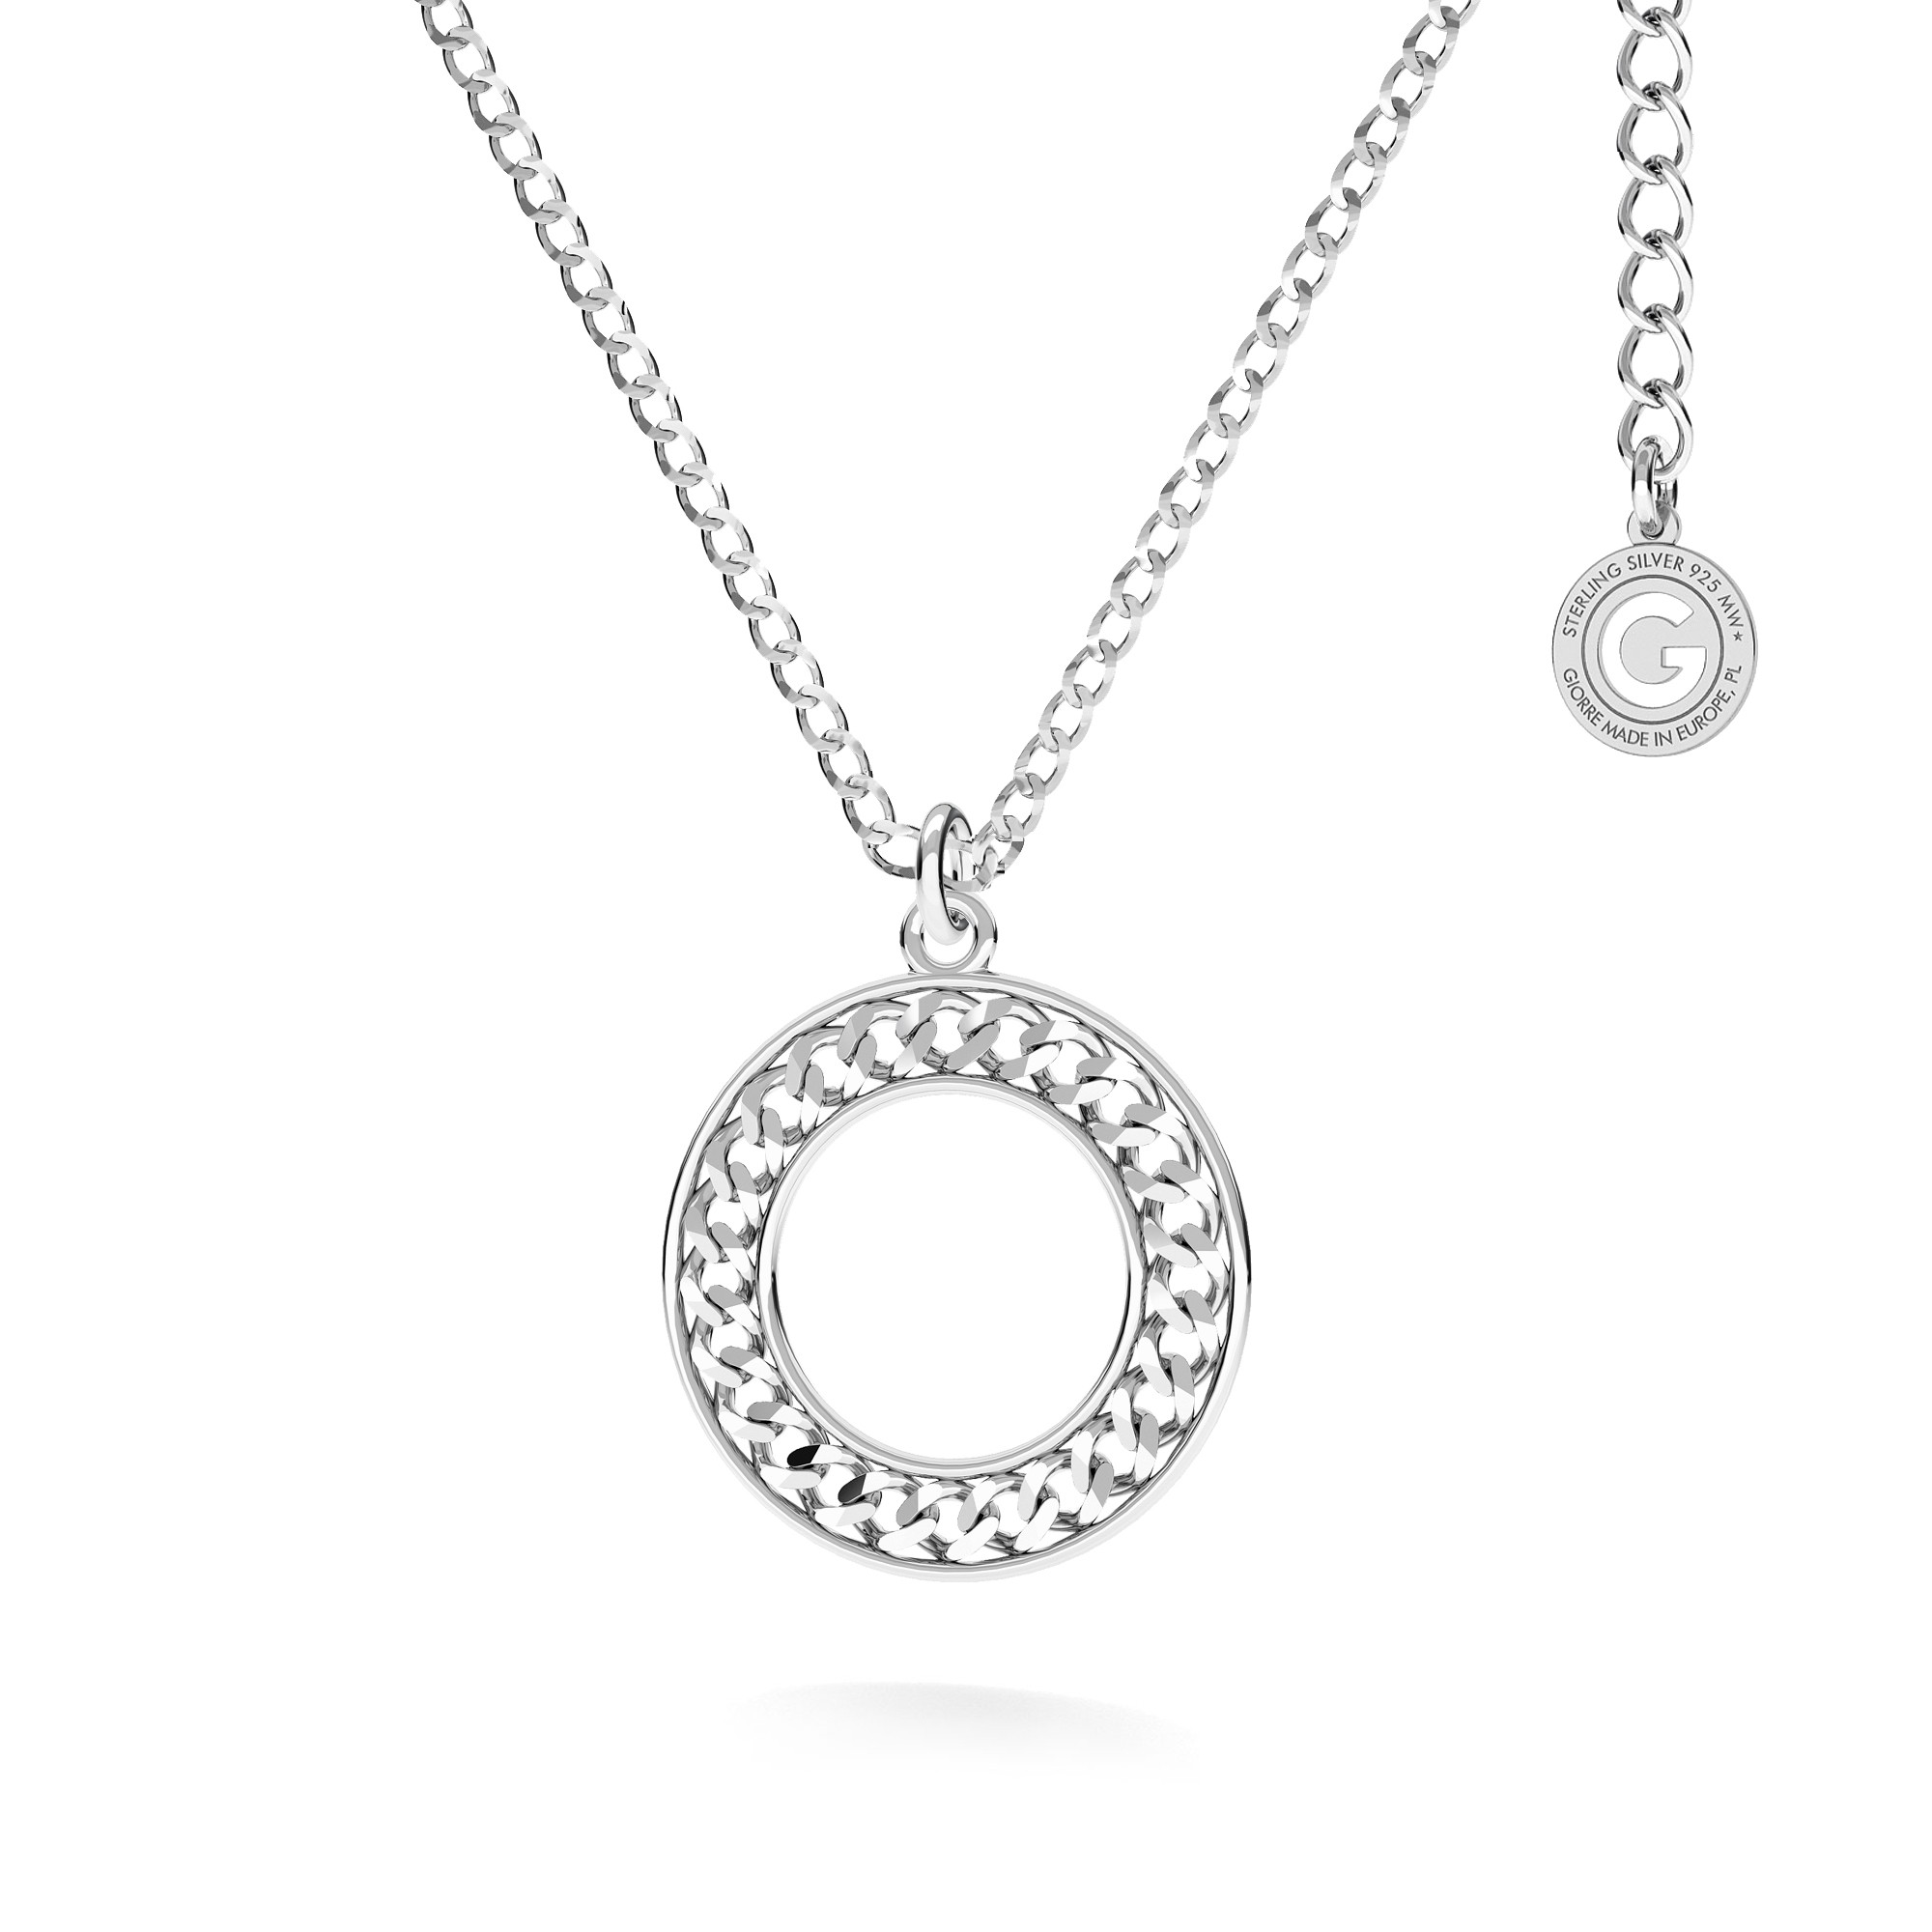 Round pendant necklace sterling silver 925